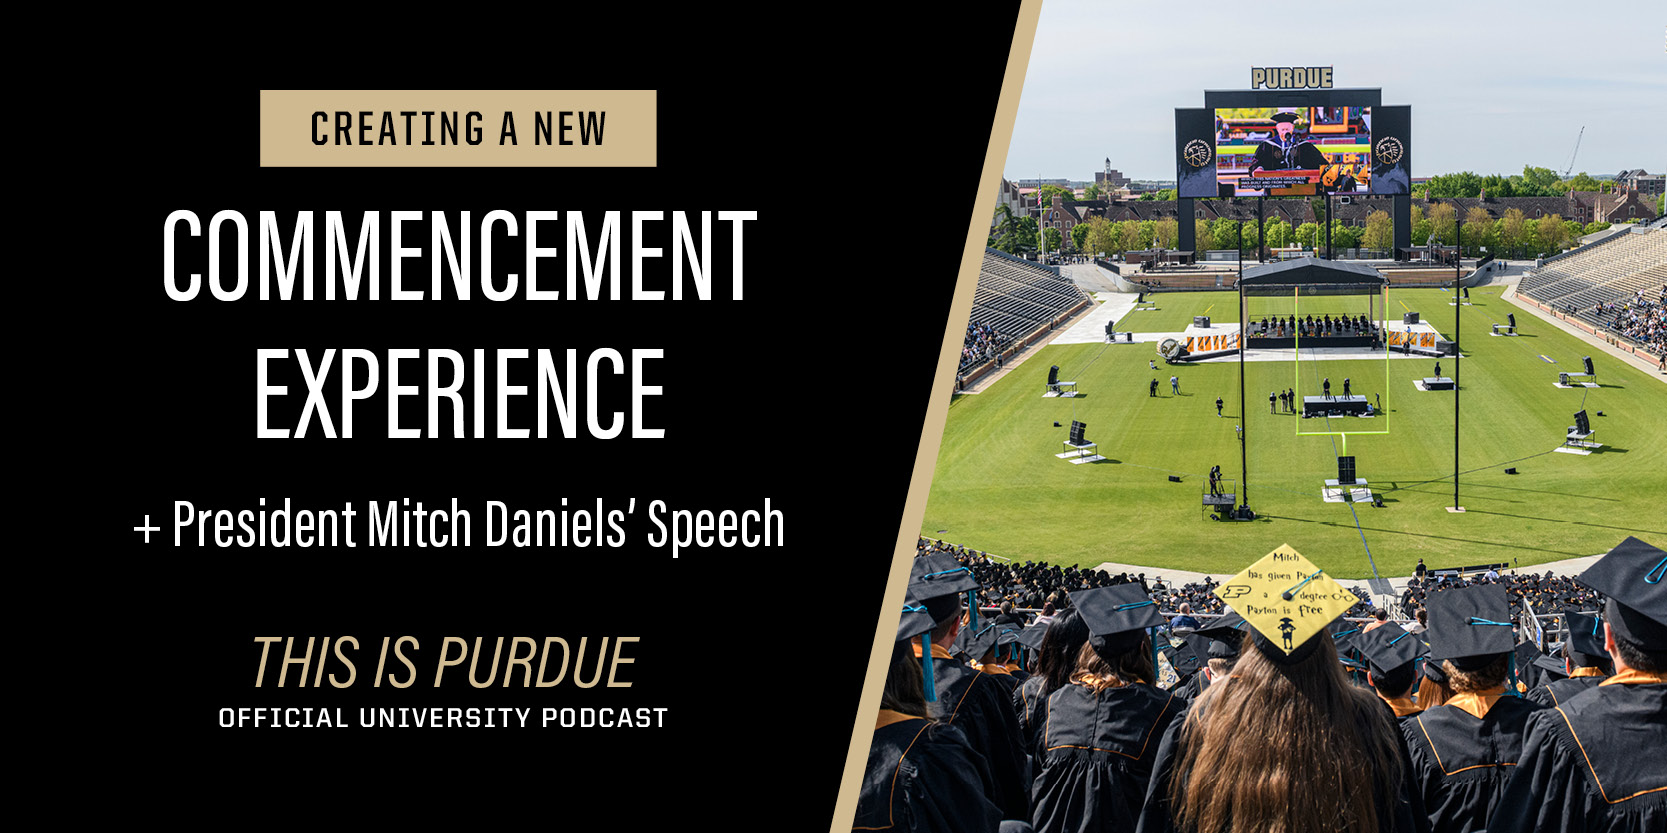 Creating a New Commencement Experience + Purdue President Mitch Daniels' Speech